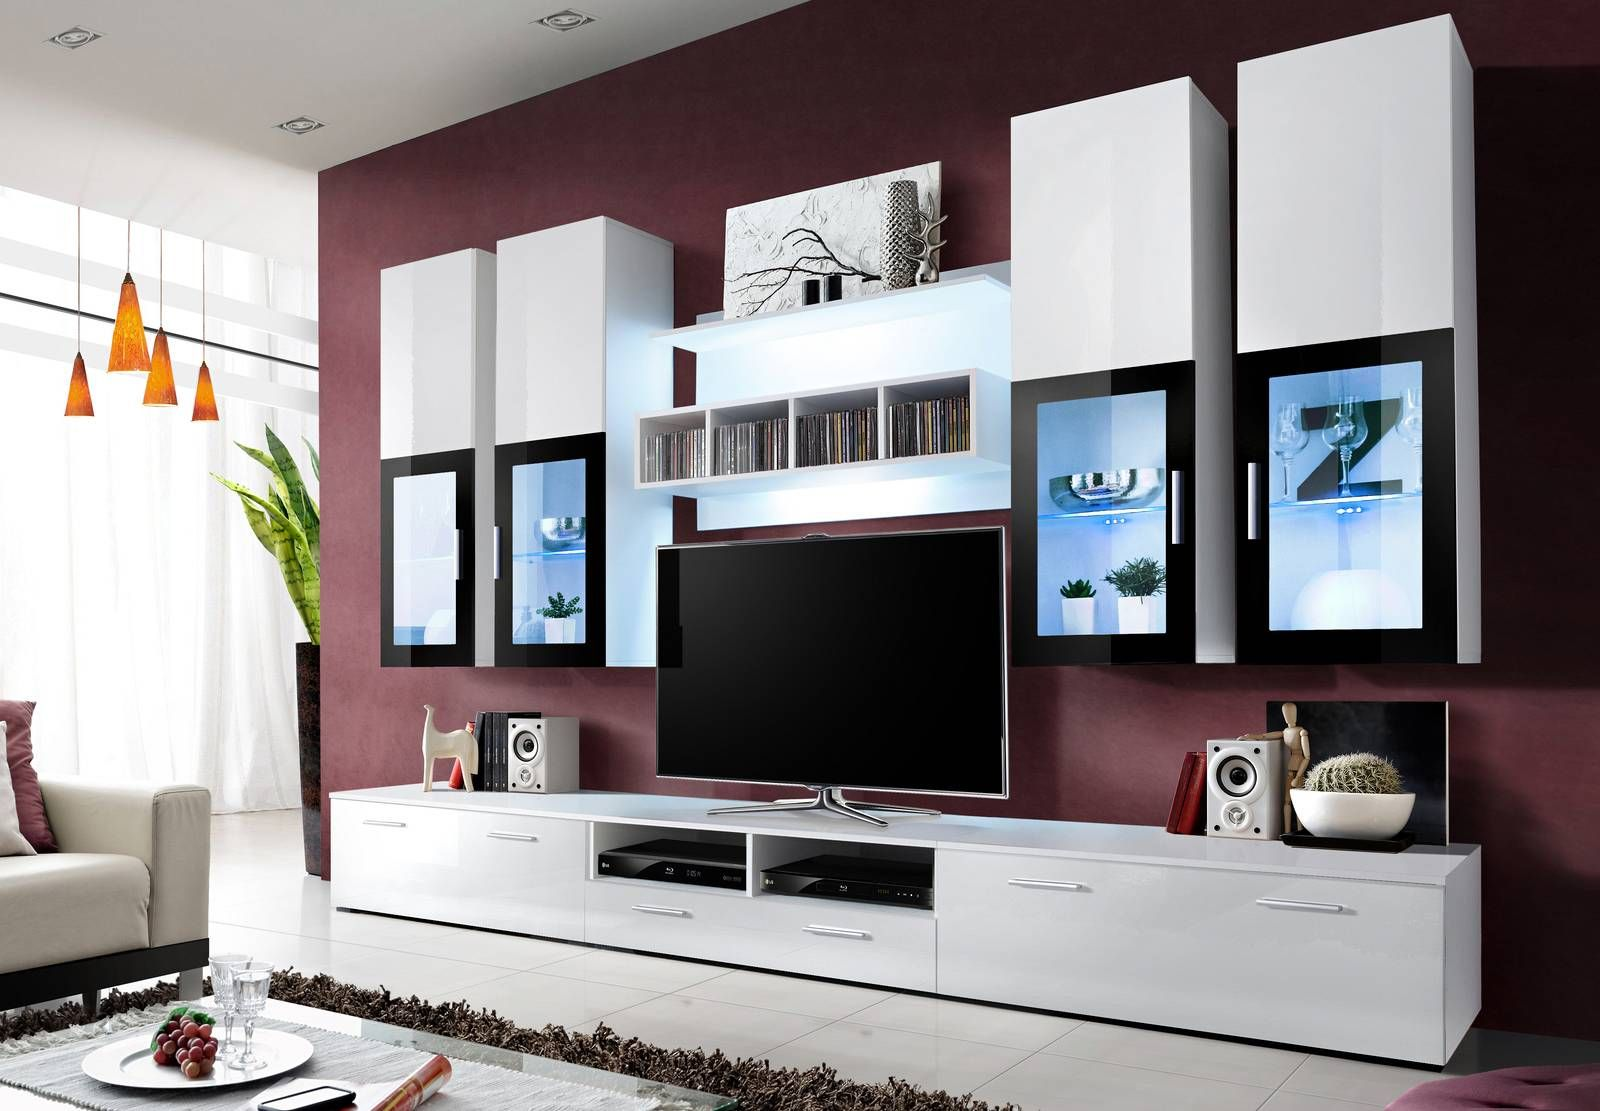 Meuble Tv Design Laqu New York Avec Eclairage Led P030809  # Meuble Tv New York